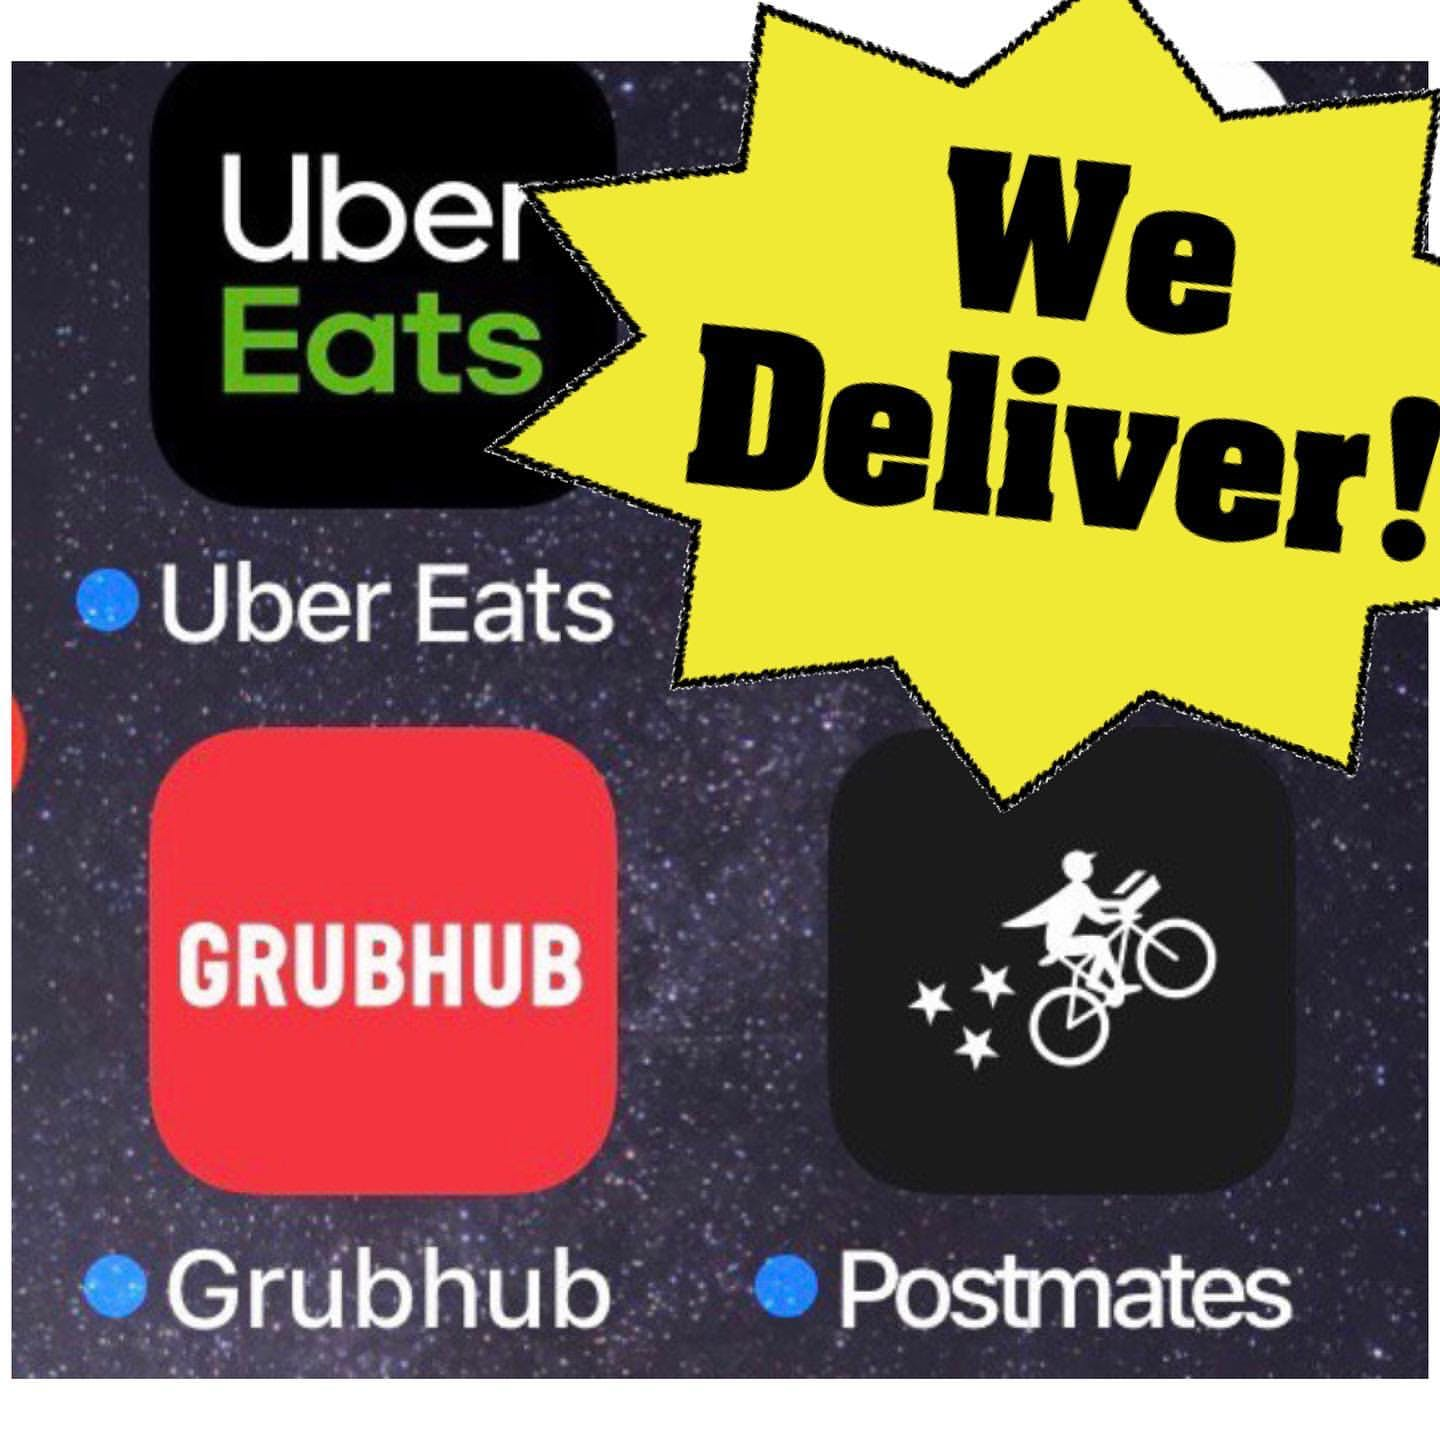 Delivery Grubhub Postmates Uber Eats Door Dash food delivery